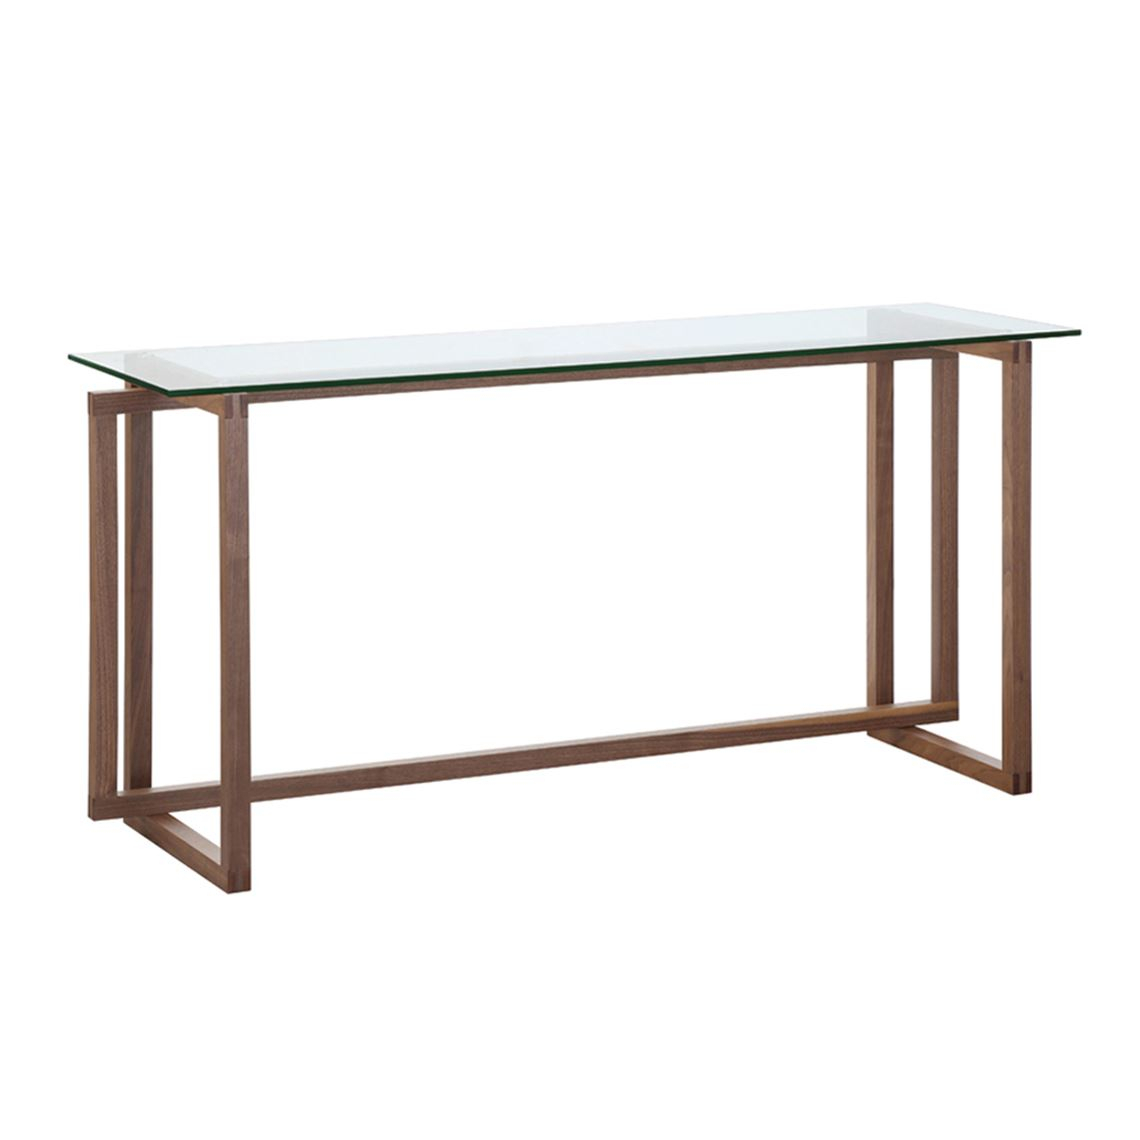 Kyra Console Table | Freedom Intended For Kyra Console Tables (Photo 1 of 30)